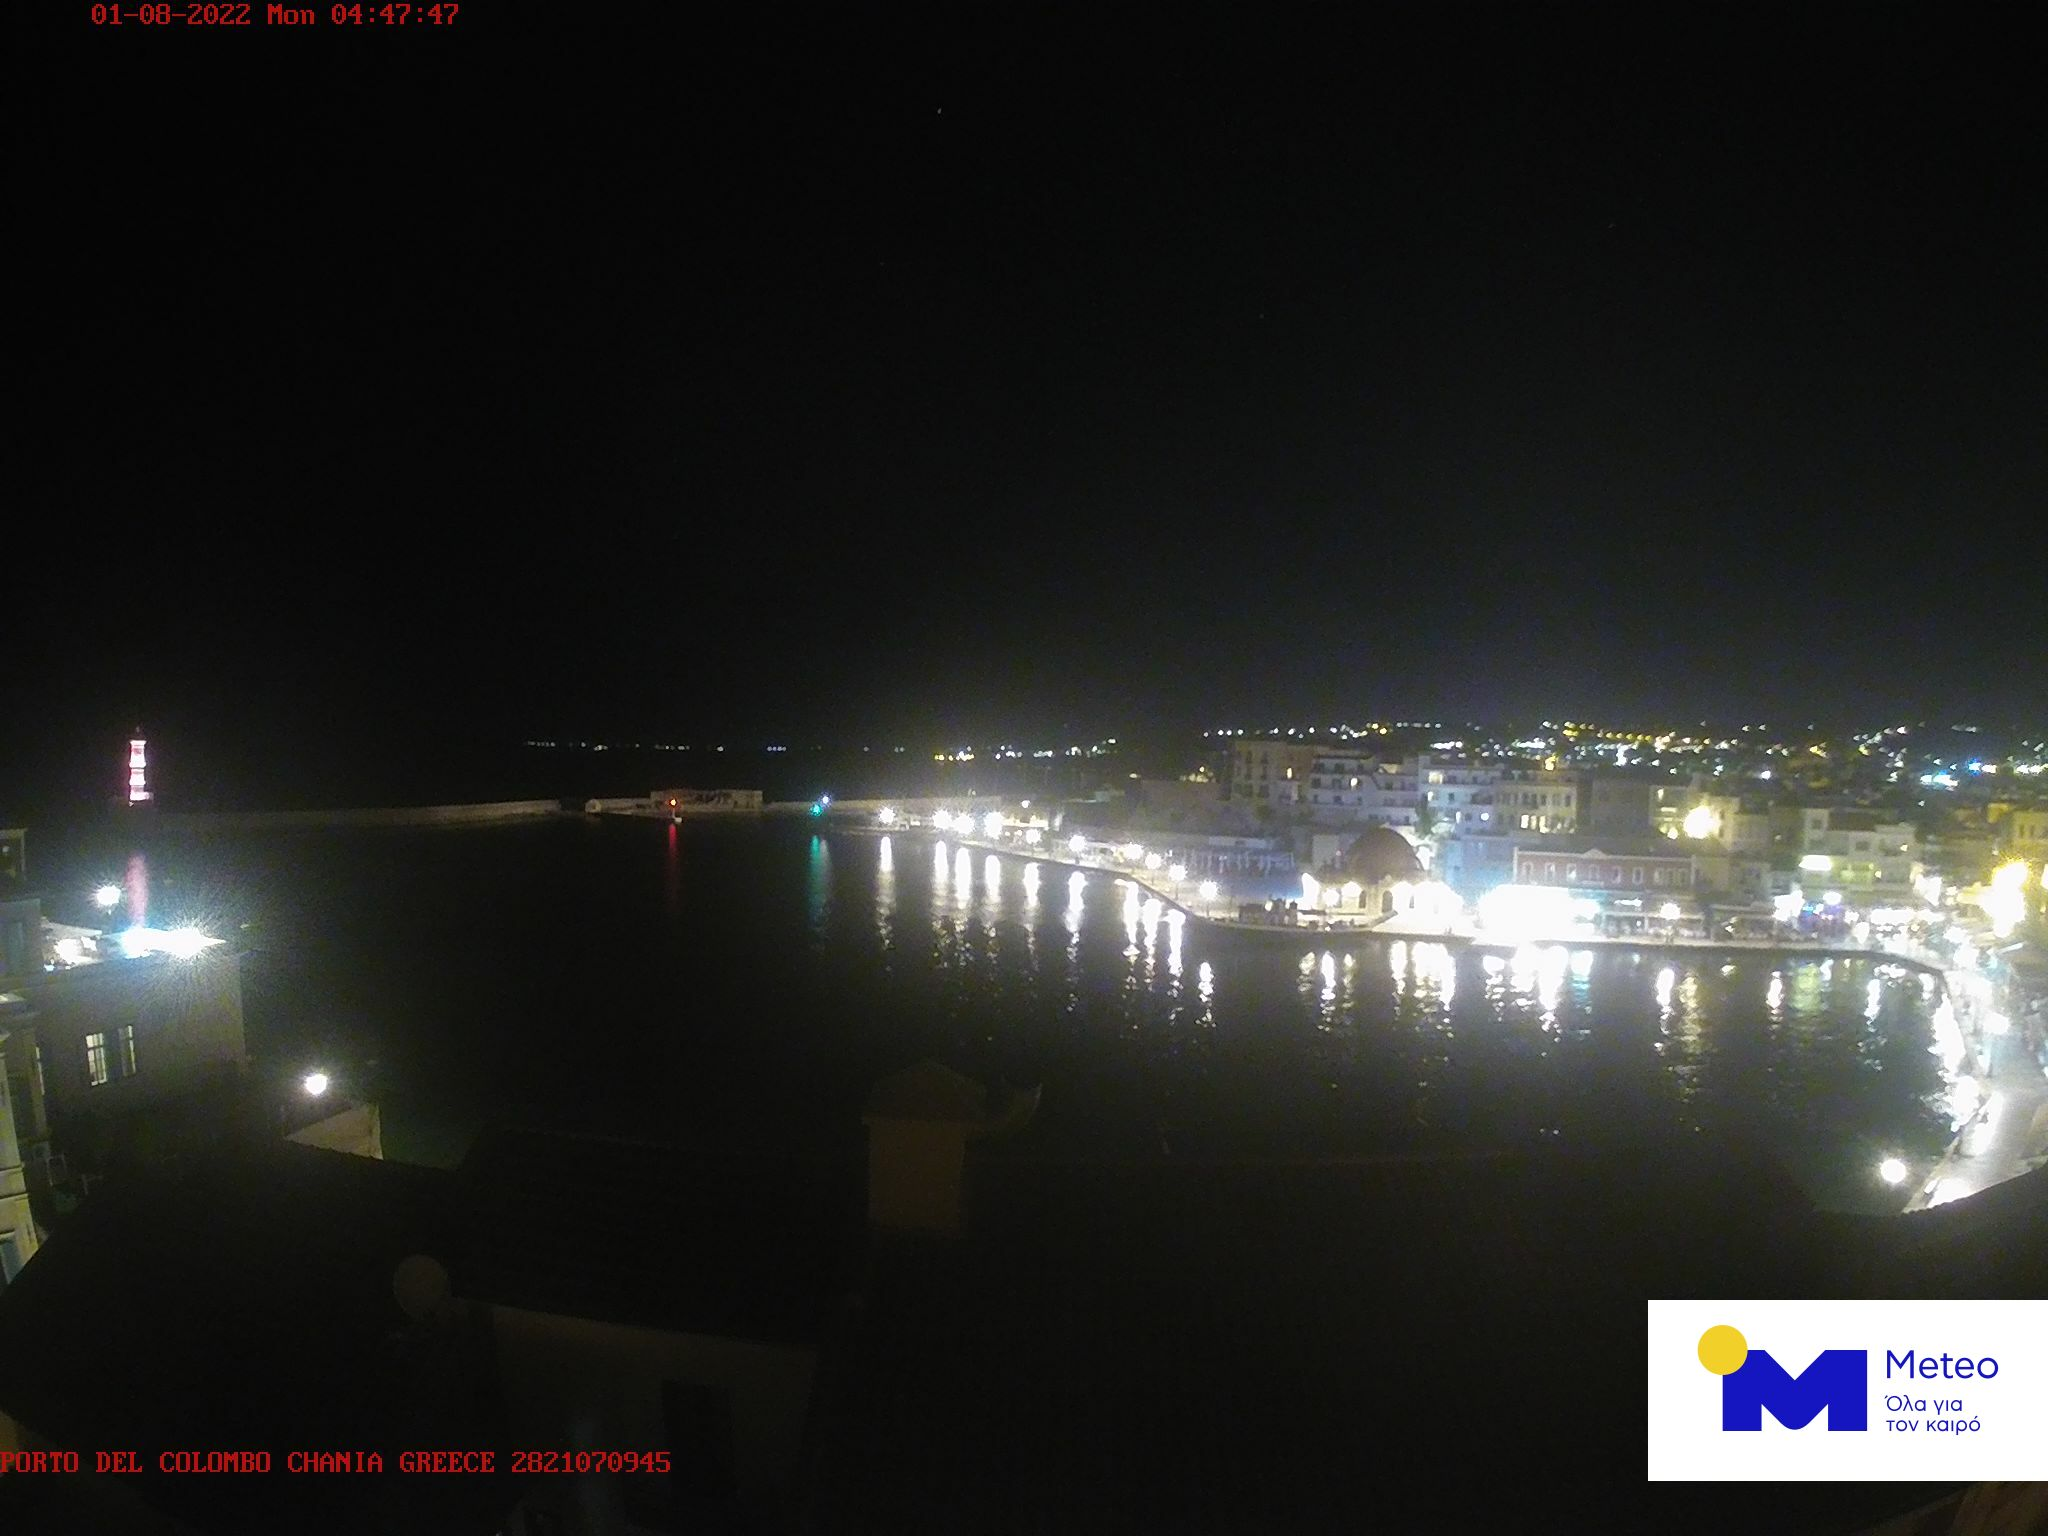 Chania webcam - HOTEL PORTO DEL COLOMBO webcam, Crete, Crete